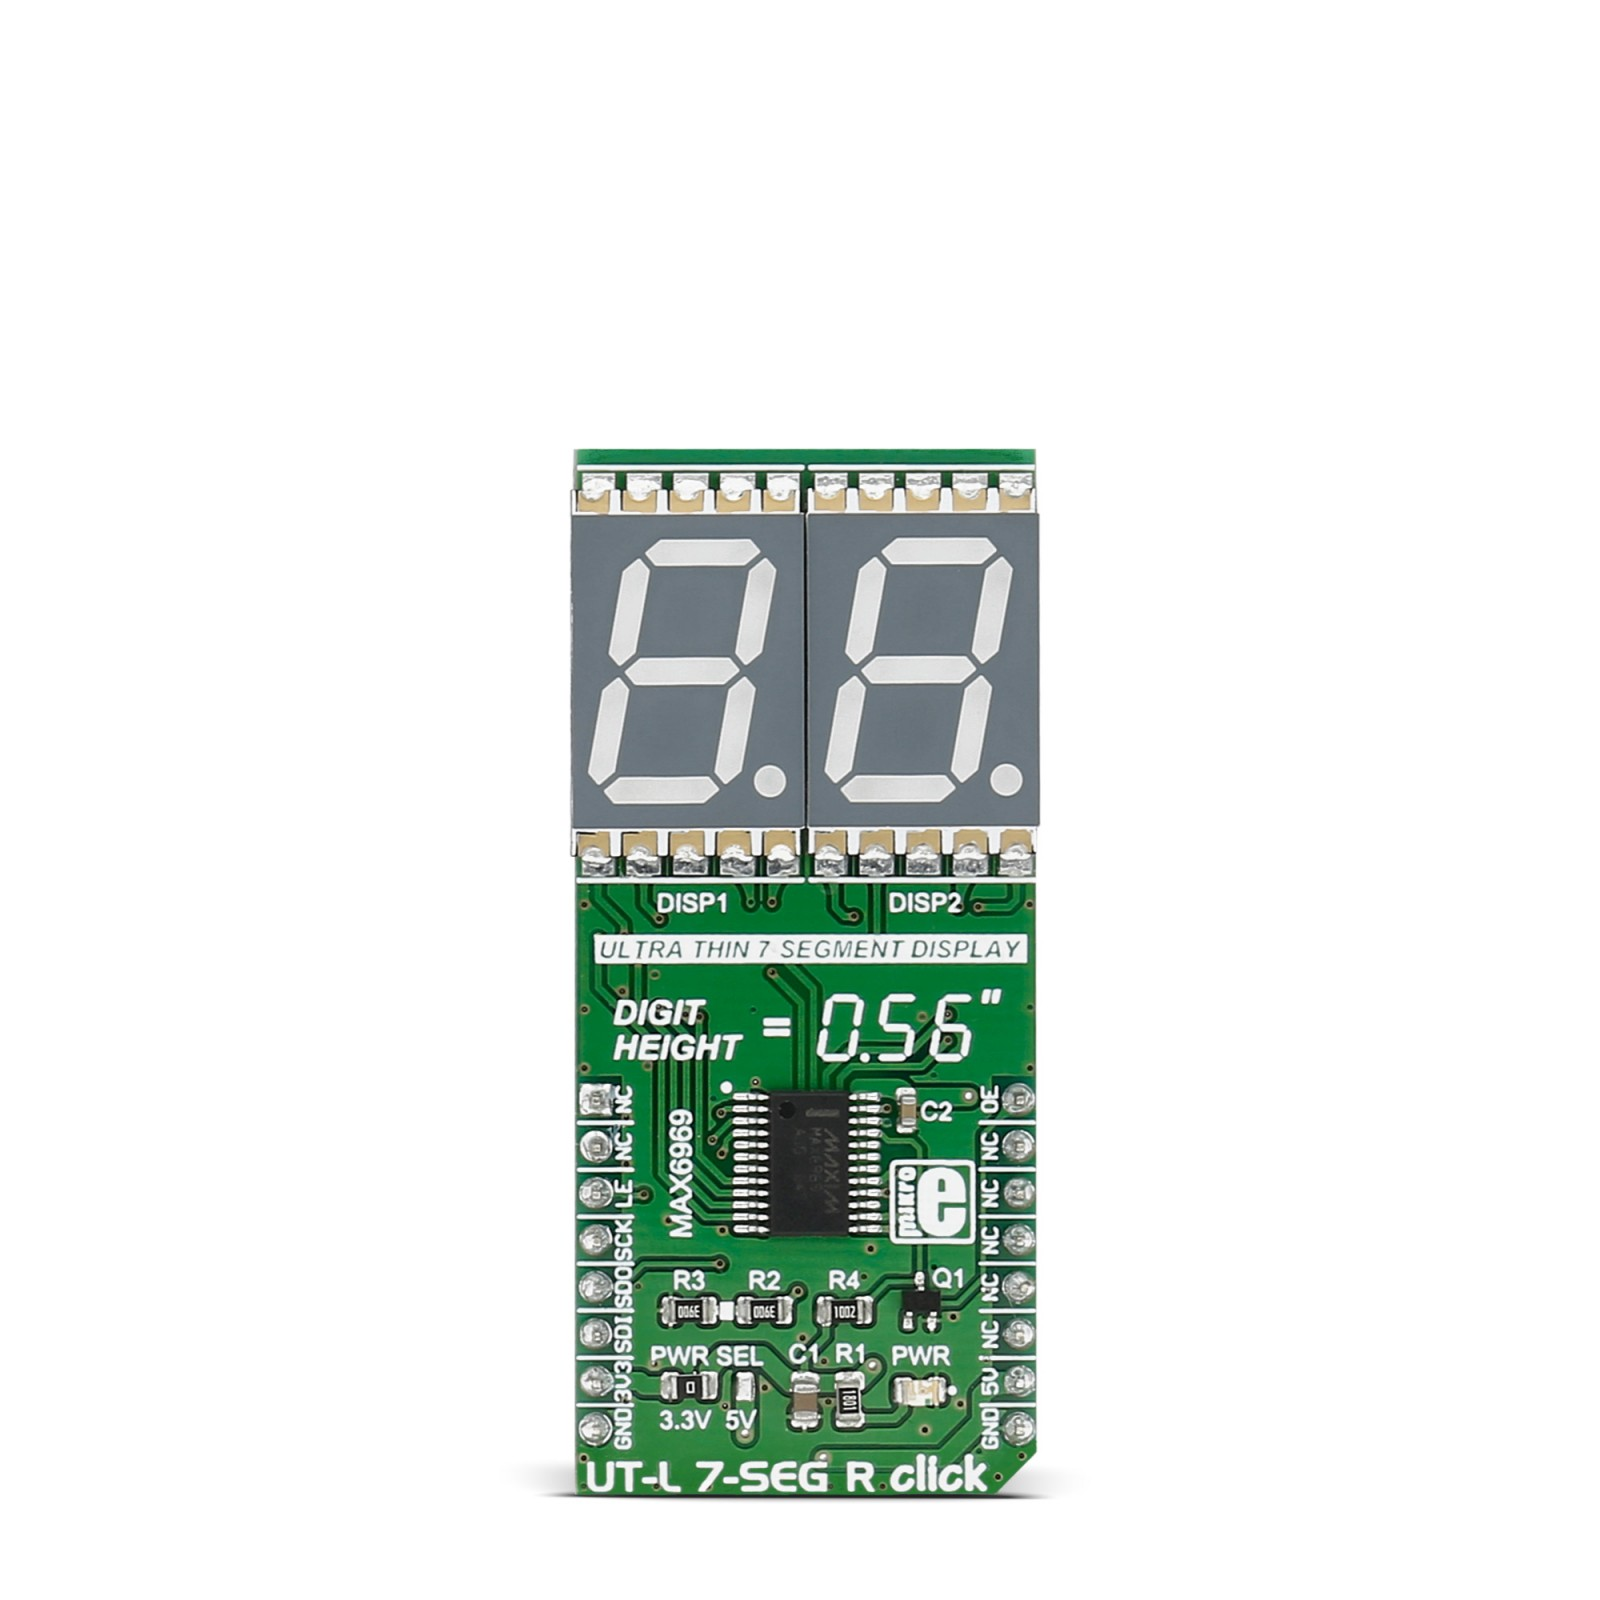 Ut L 7 Seg R Click Board With Two Segment Displays Circuit Diagram To Interface Pic16f877a Mgctlbxnmzp Mgctlbxv5112 Mgctlbxlc Mgctlbxpprestashop